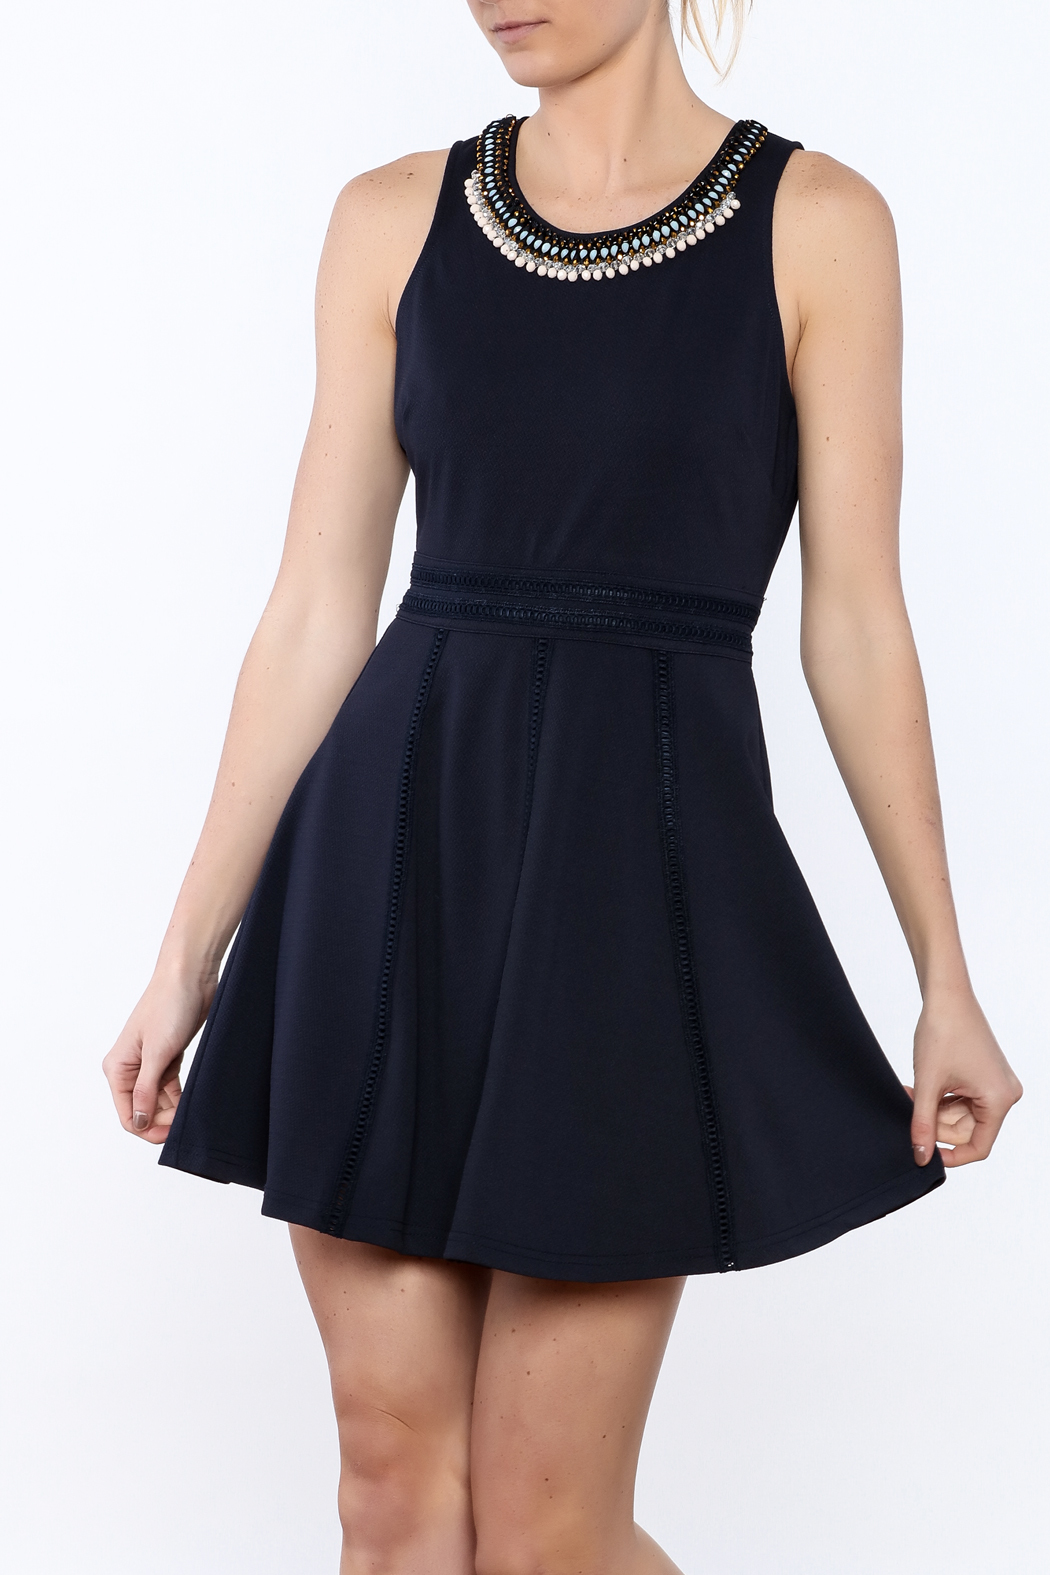 The Clothing Co Navy Caroline Dress - Front Cropped Image